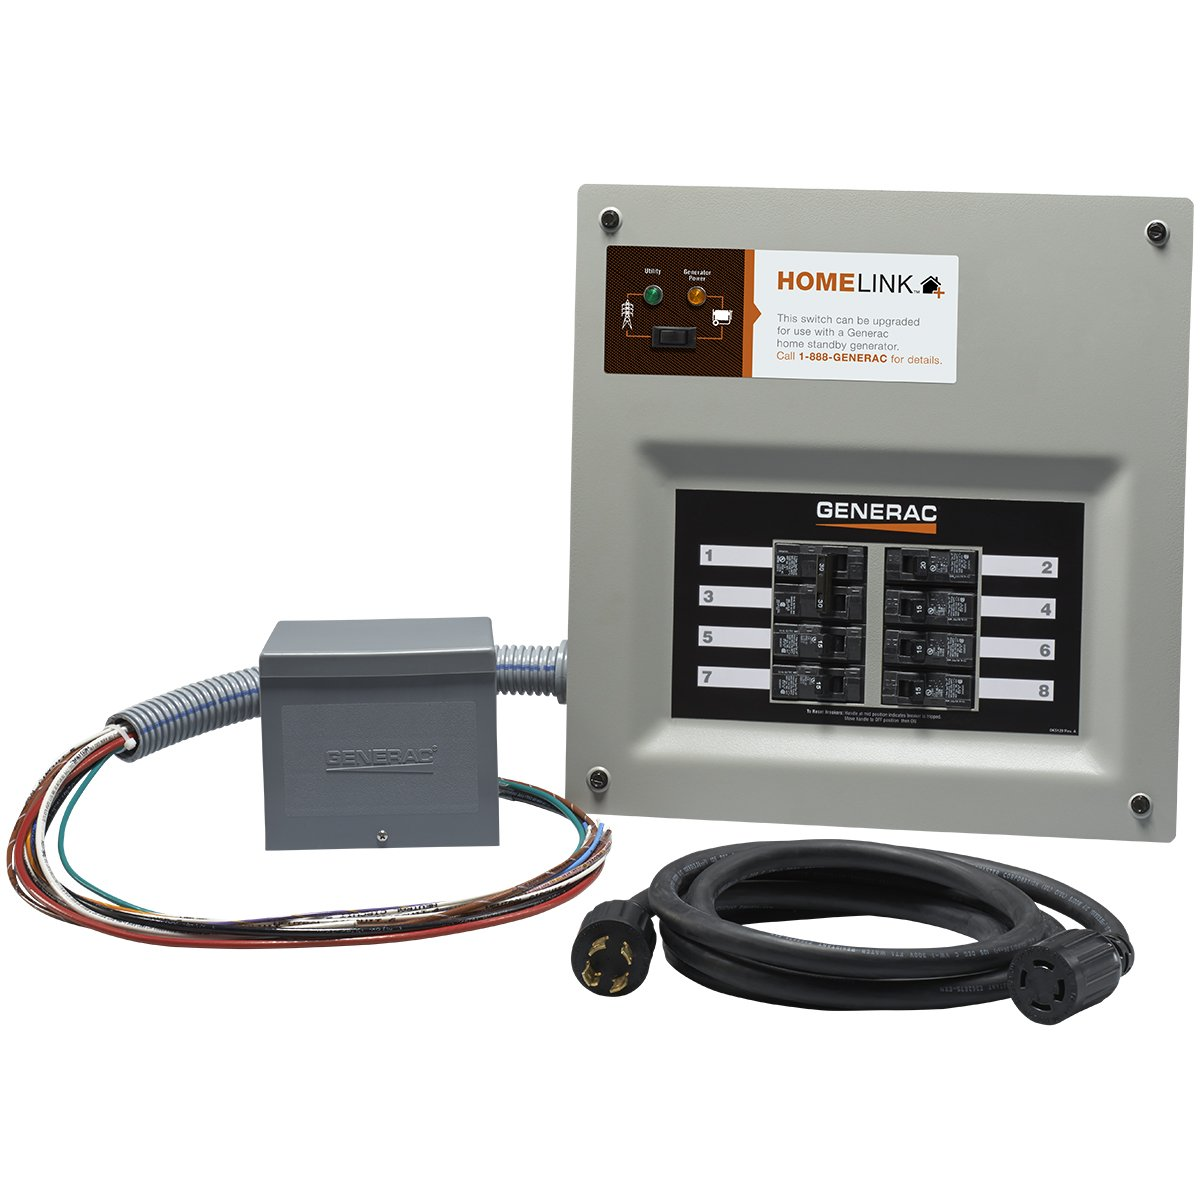 Generac 6853 Home Link Upgradeable 30 Amp Transfer Switch Kit with 10' Cord and Resin Power Inlet Box by Generac